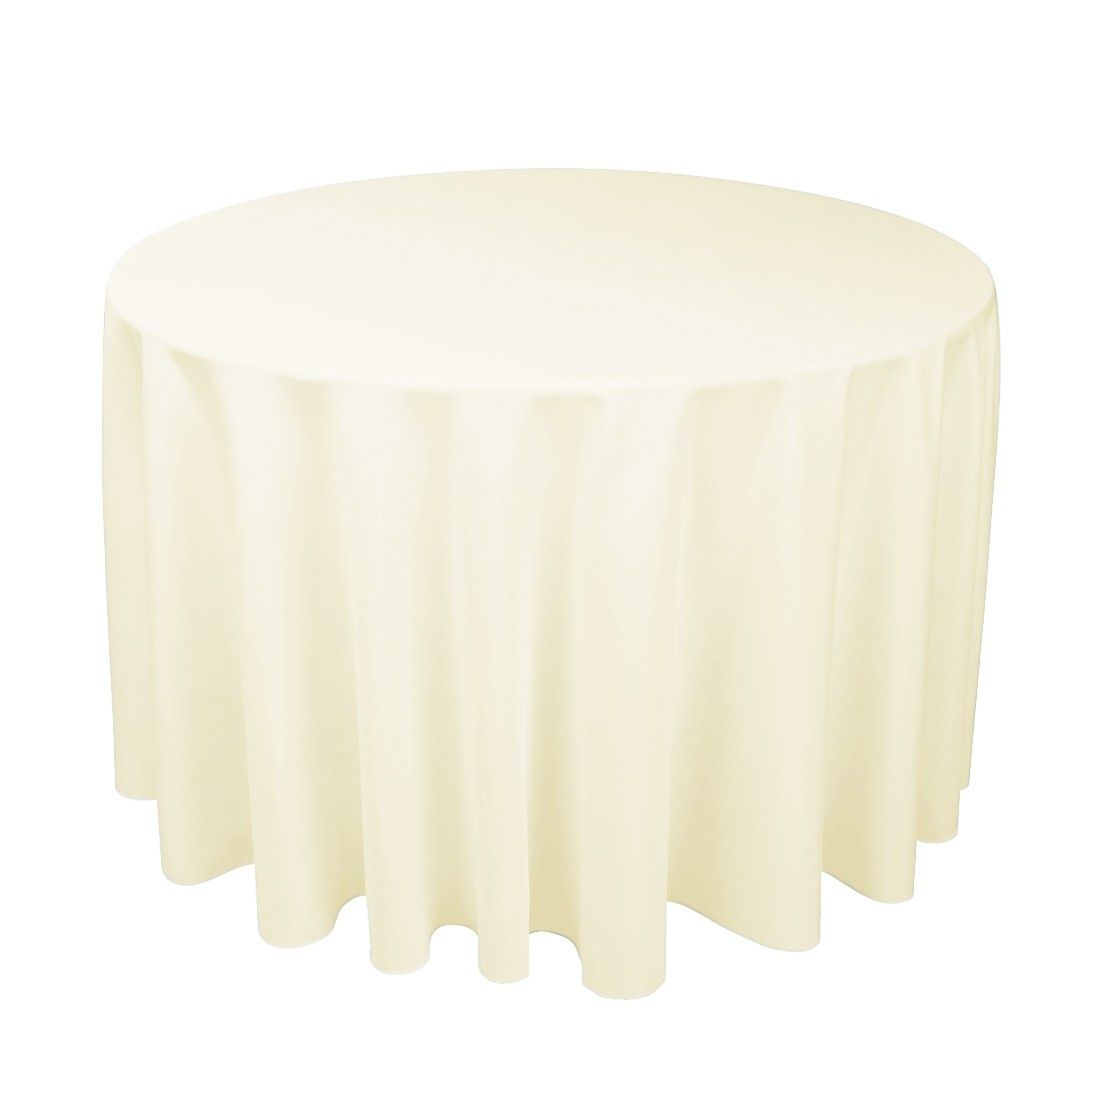 108 Inch Round Over 48 Inch Table Available In Ivory White And Black Rental 8 50 With Images Table Cloth Round Tablecloth Table Linens